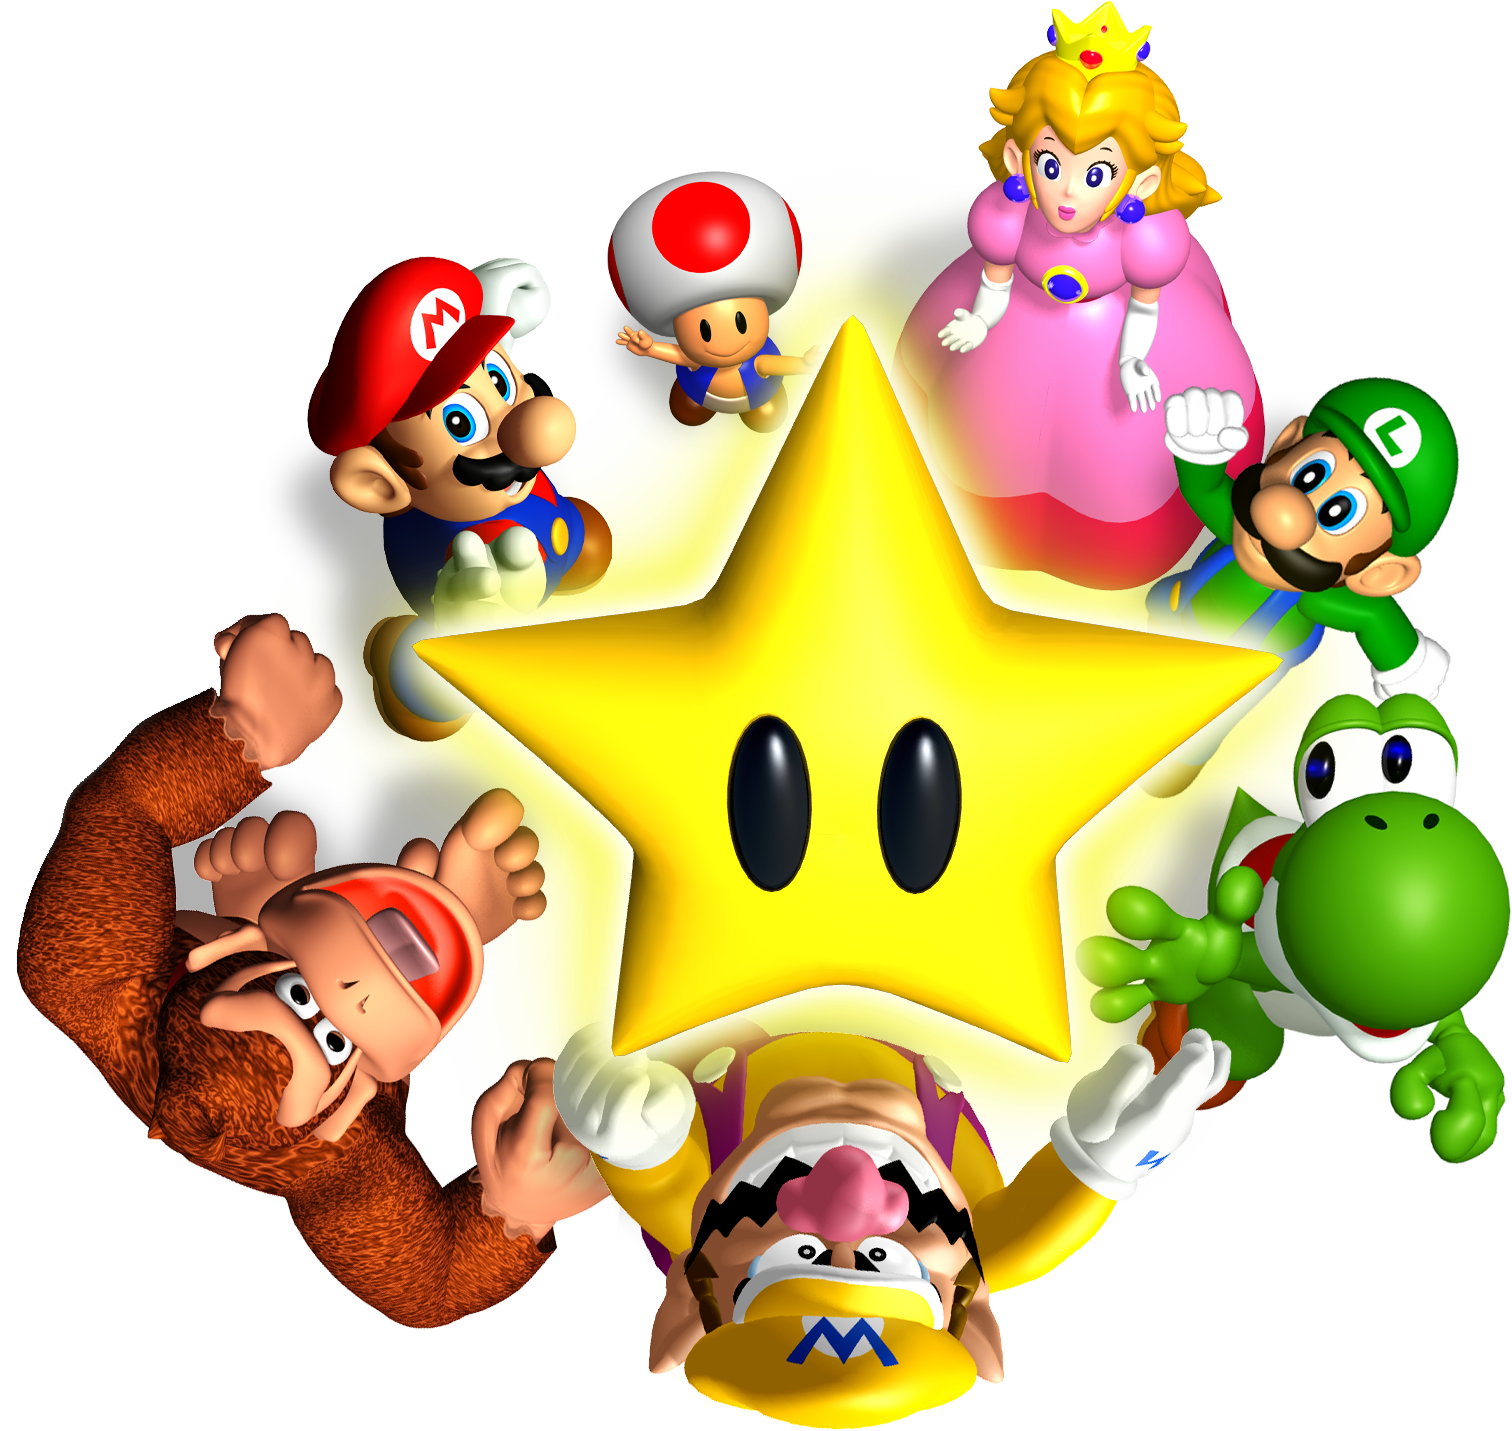 Mario party 2 png. Image cast wiki fandom